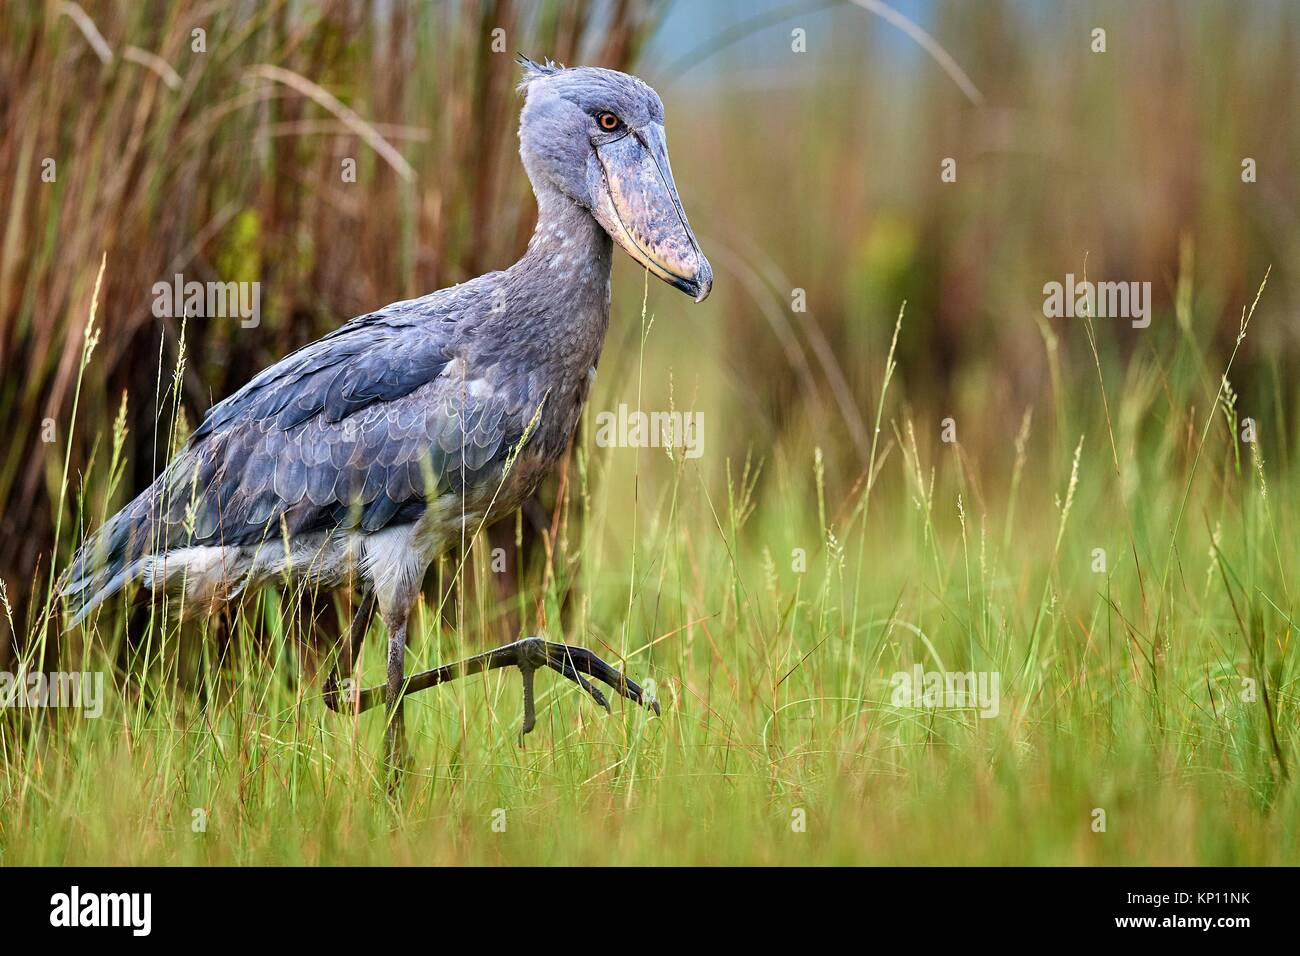 Whale headed / Shoebill stork (Balaeniceps rex) in the swamps of Mabamba, Lake Victoria, Uganda. - Stock Image